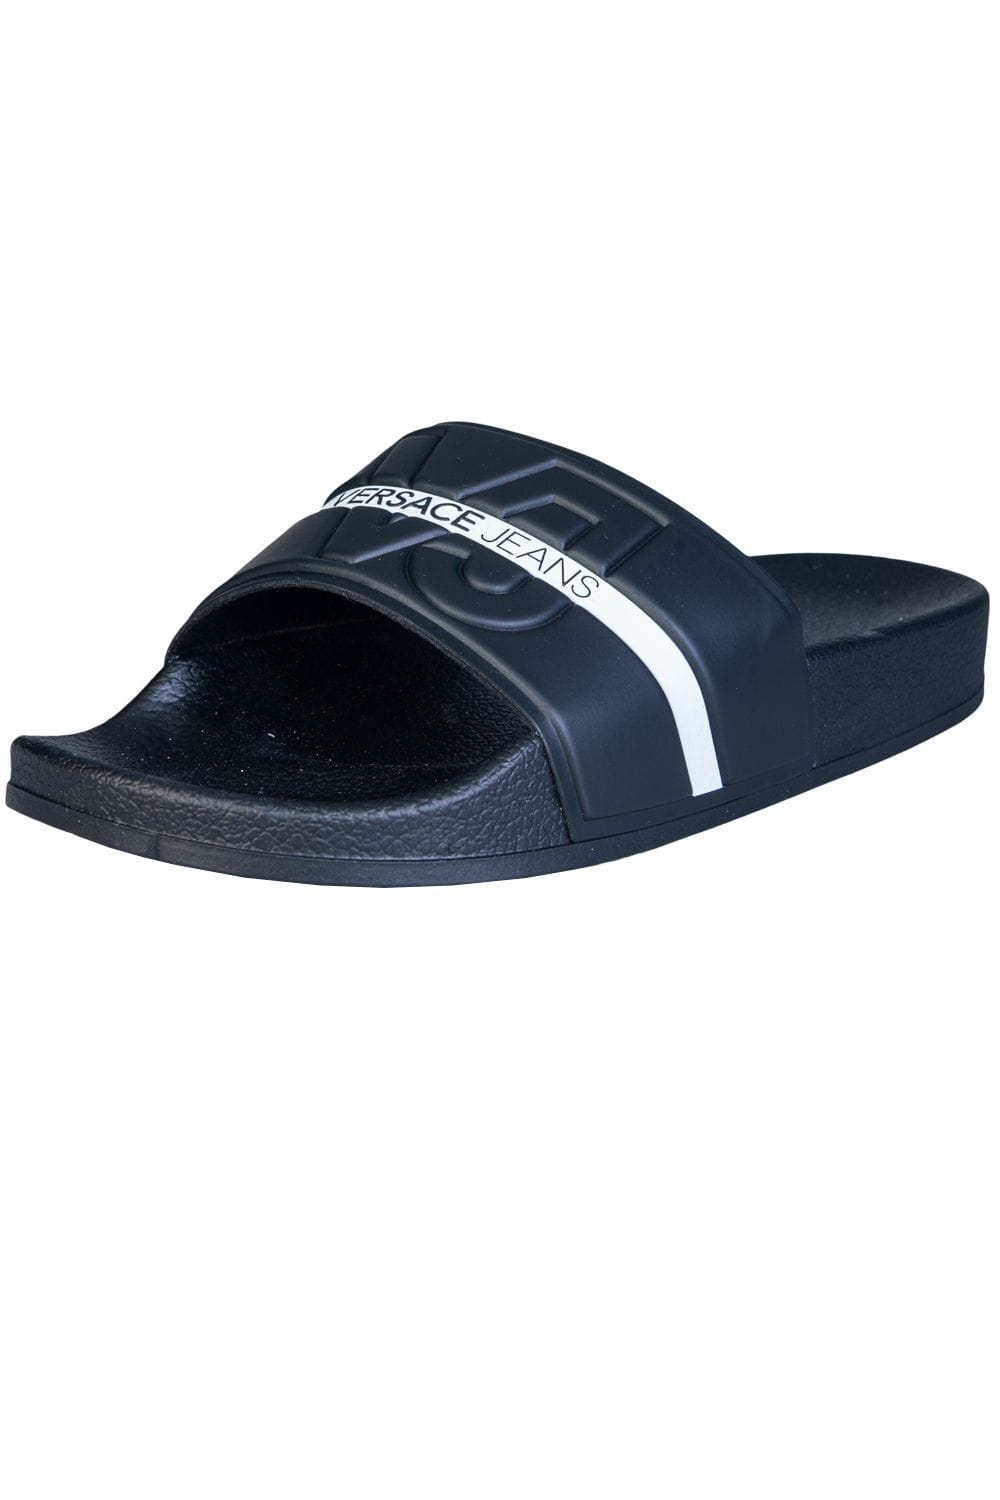 f906019e077c Versace Sliders E0YSBSL1 70824 - Footwear from Sage Clothing UK